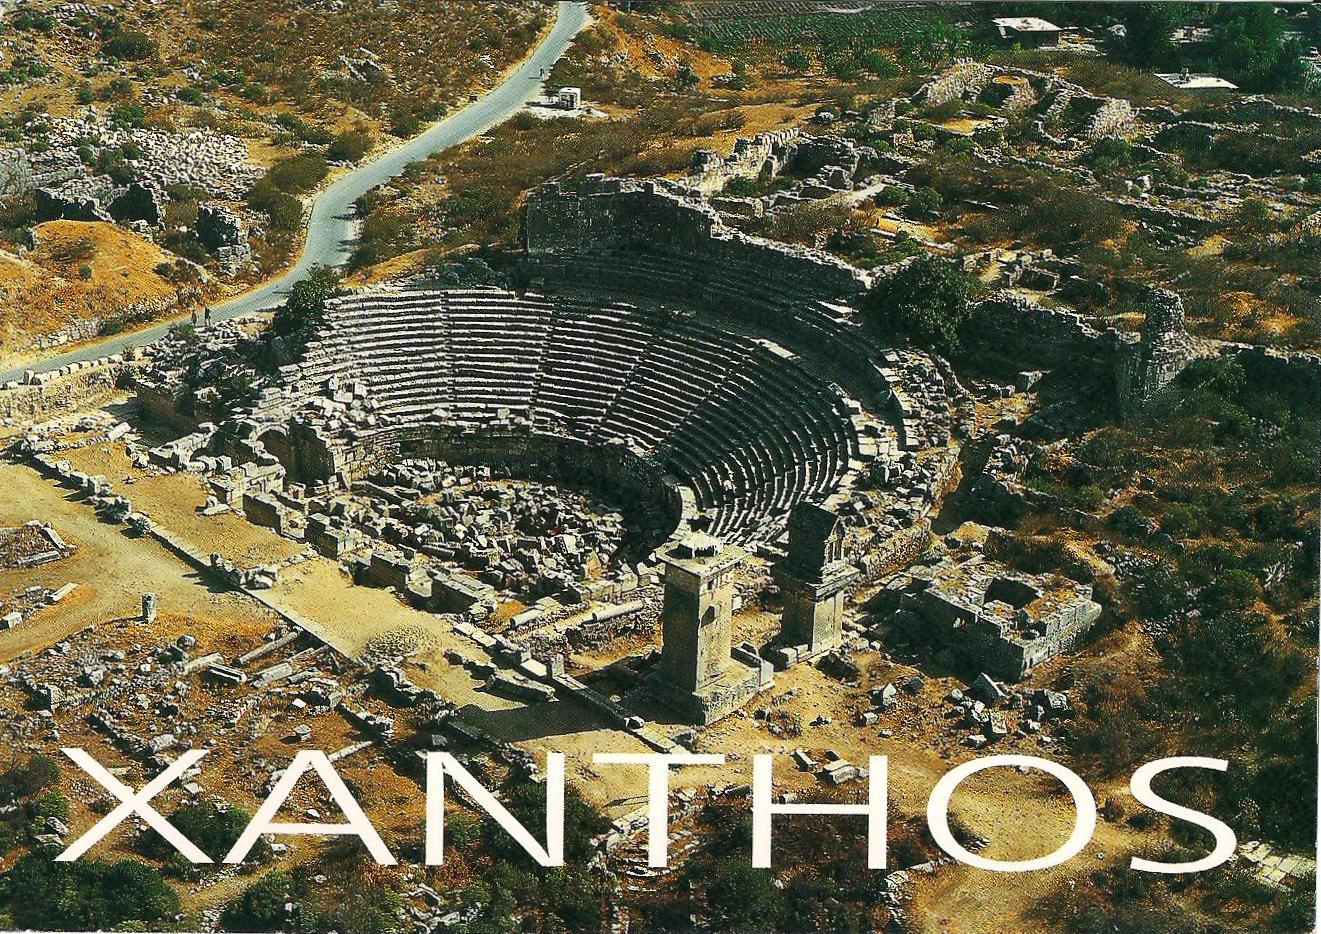 MY UNESCO WHS POSTCARDS COLLECTION: TURKEY - Xanthos-Letoon